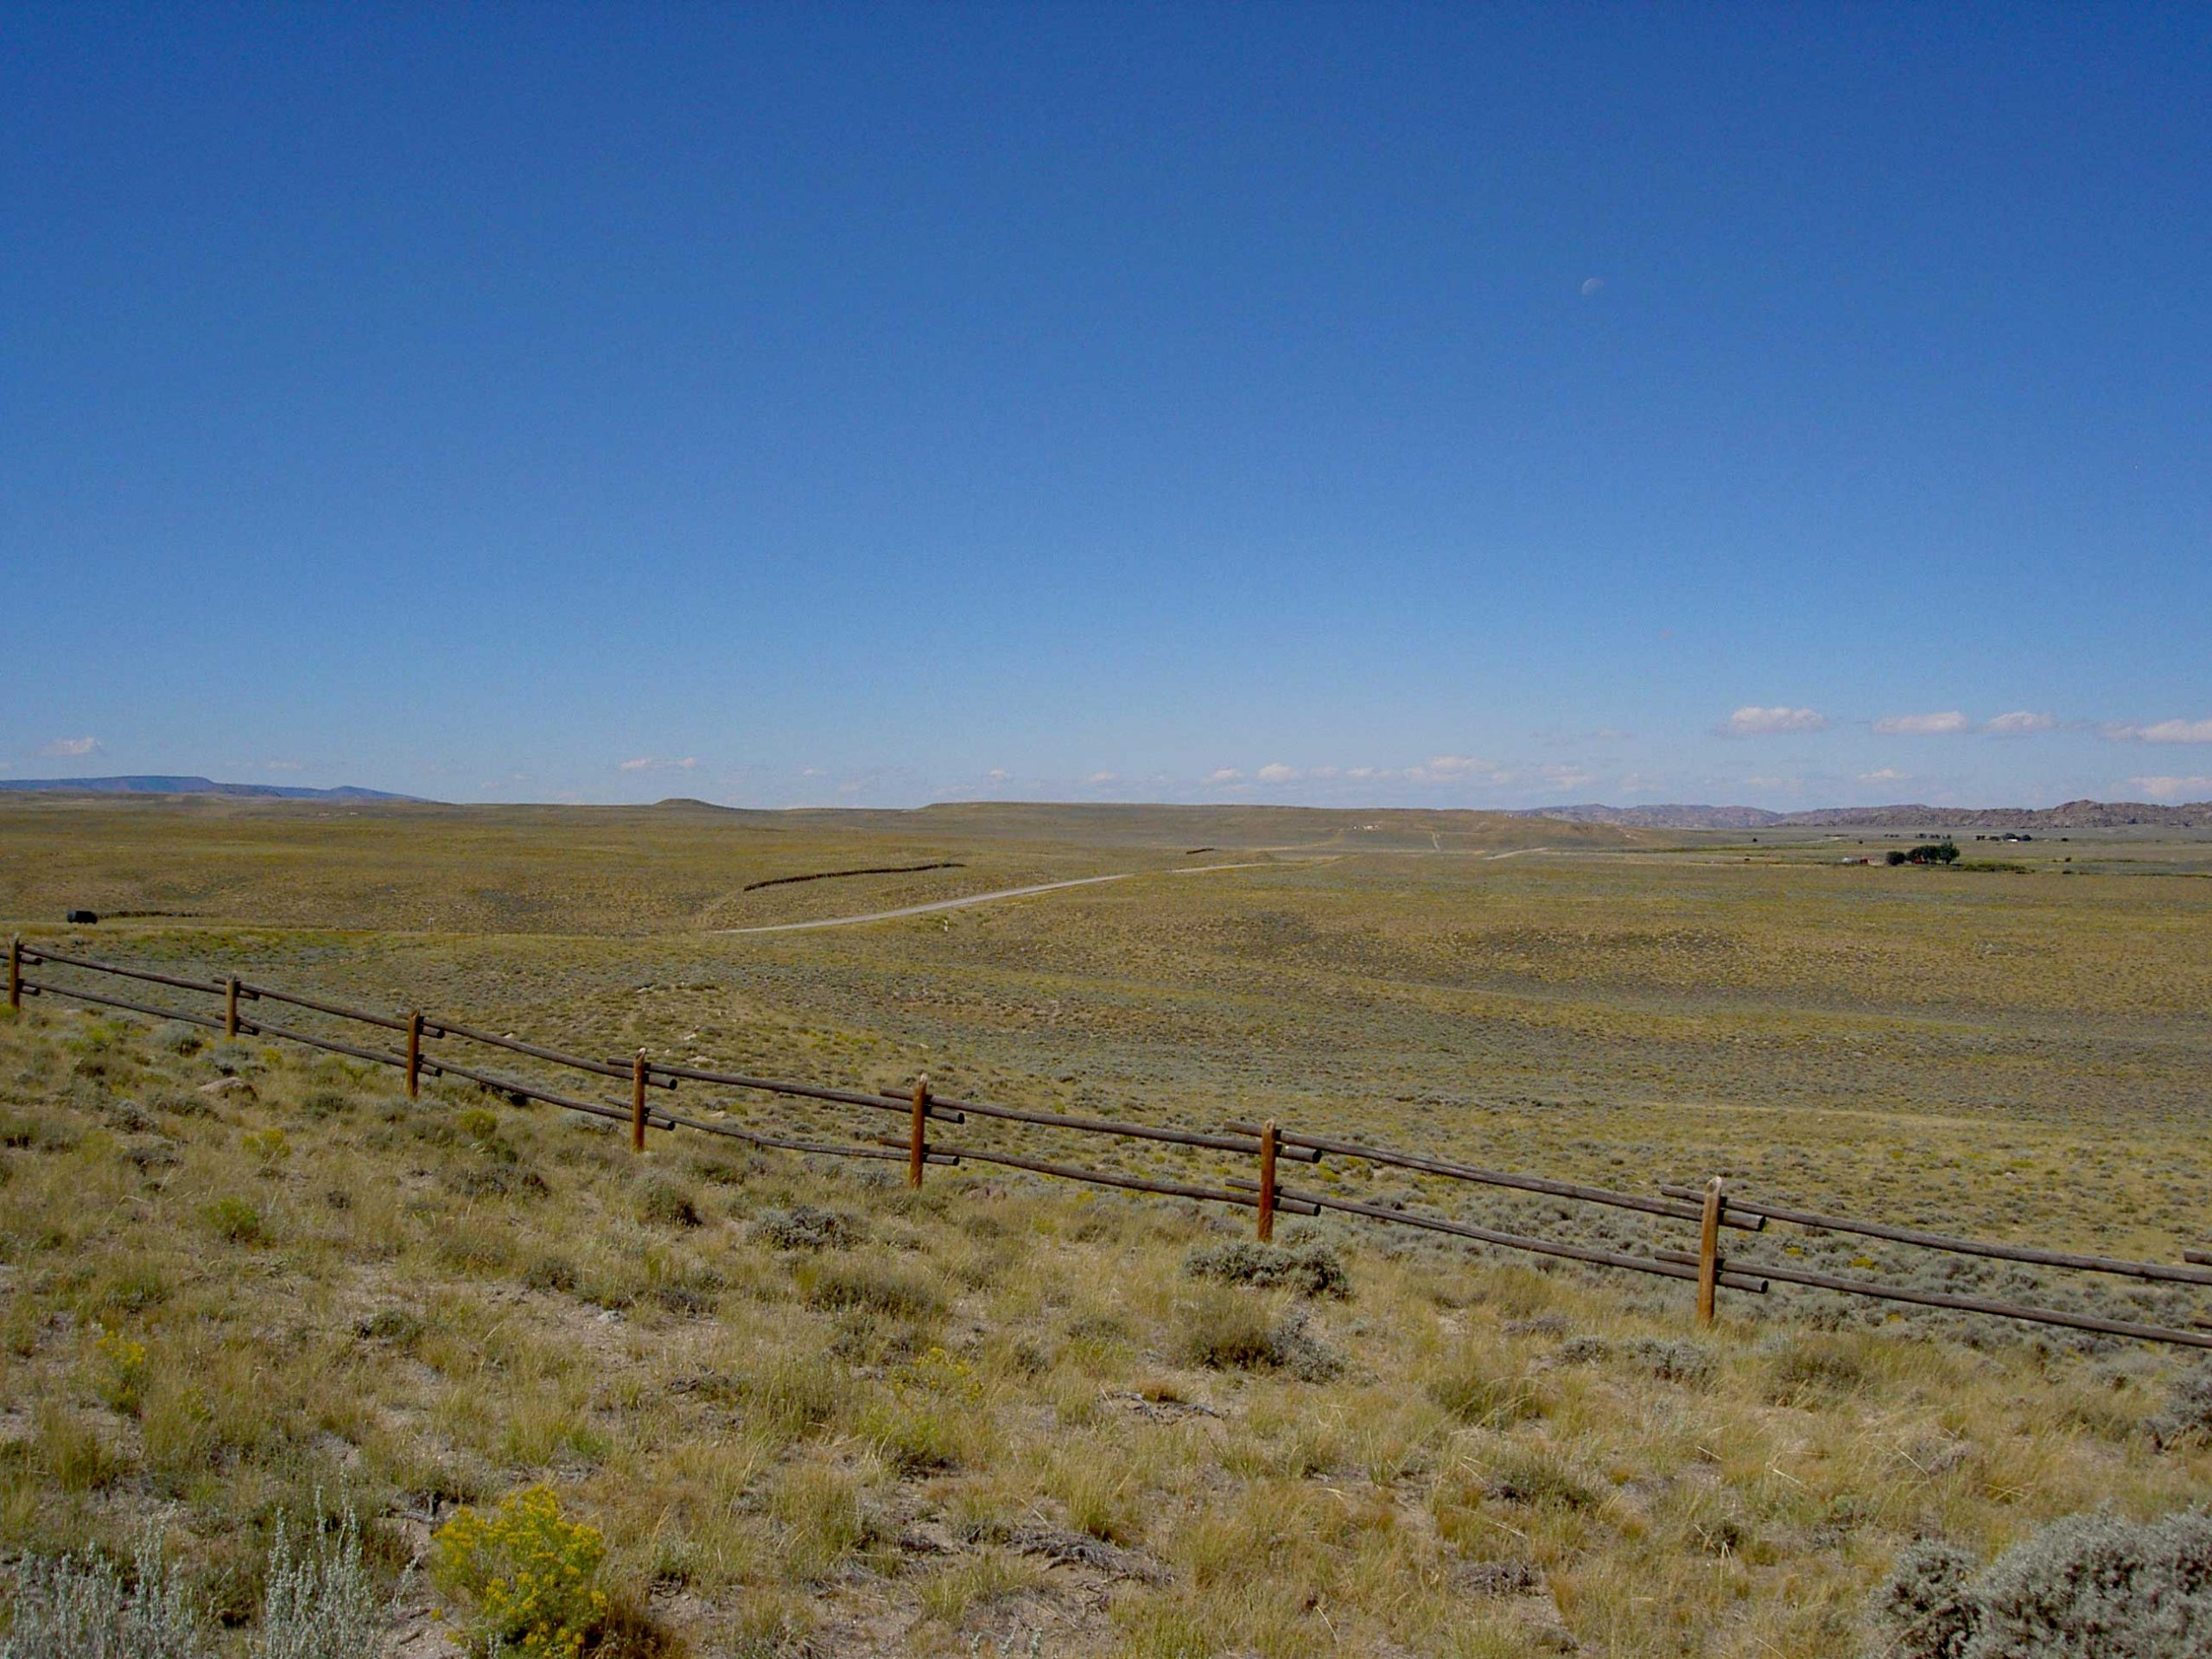 Looking west from Devil's Gate in Wyoming